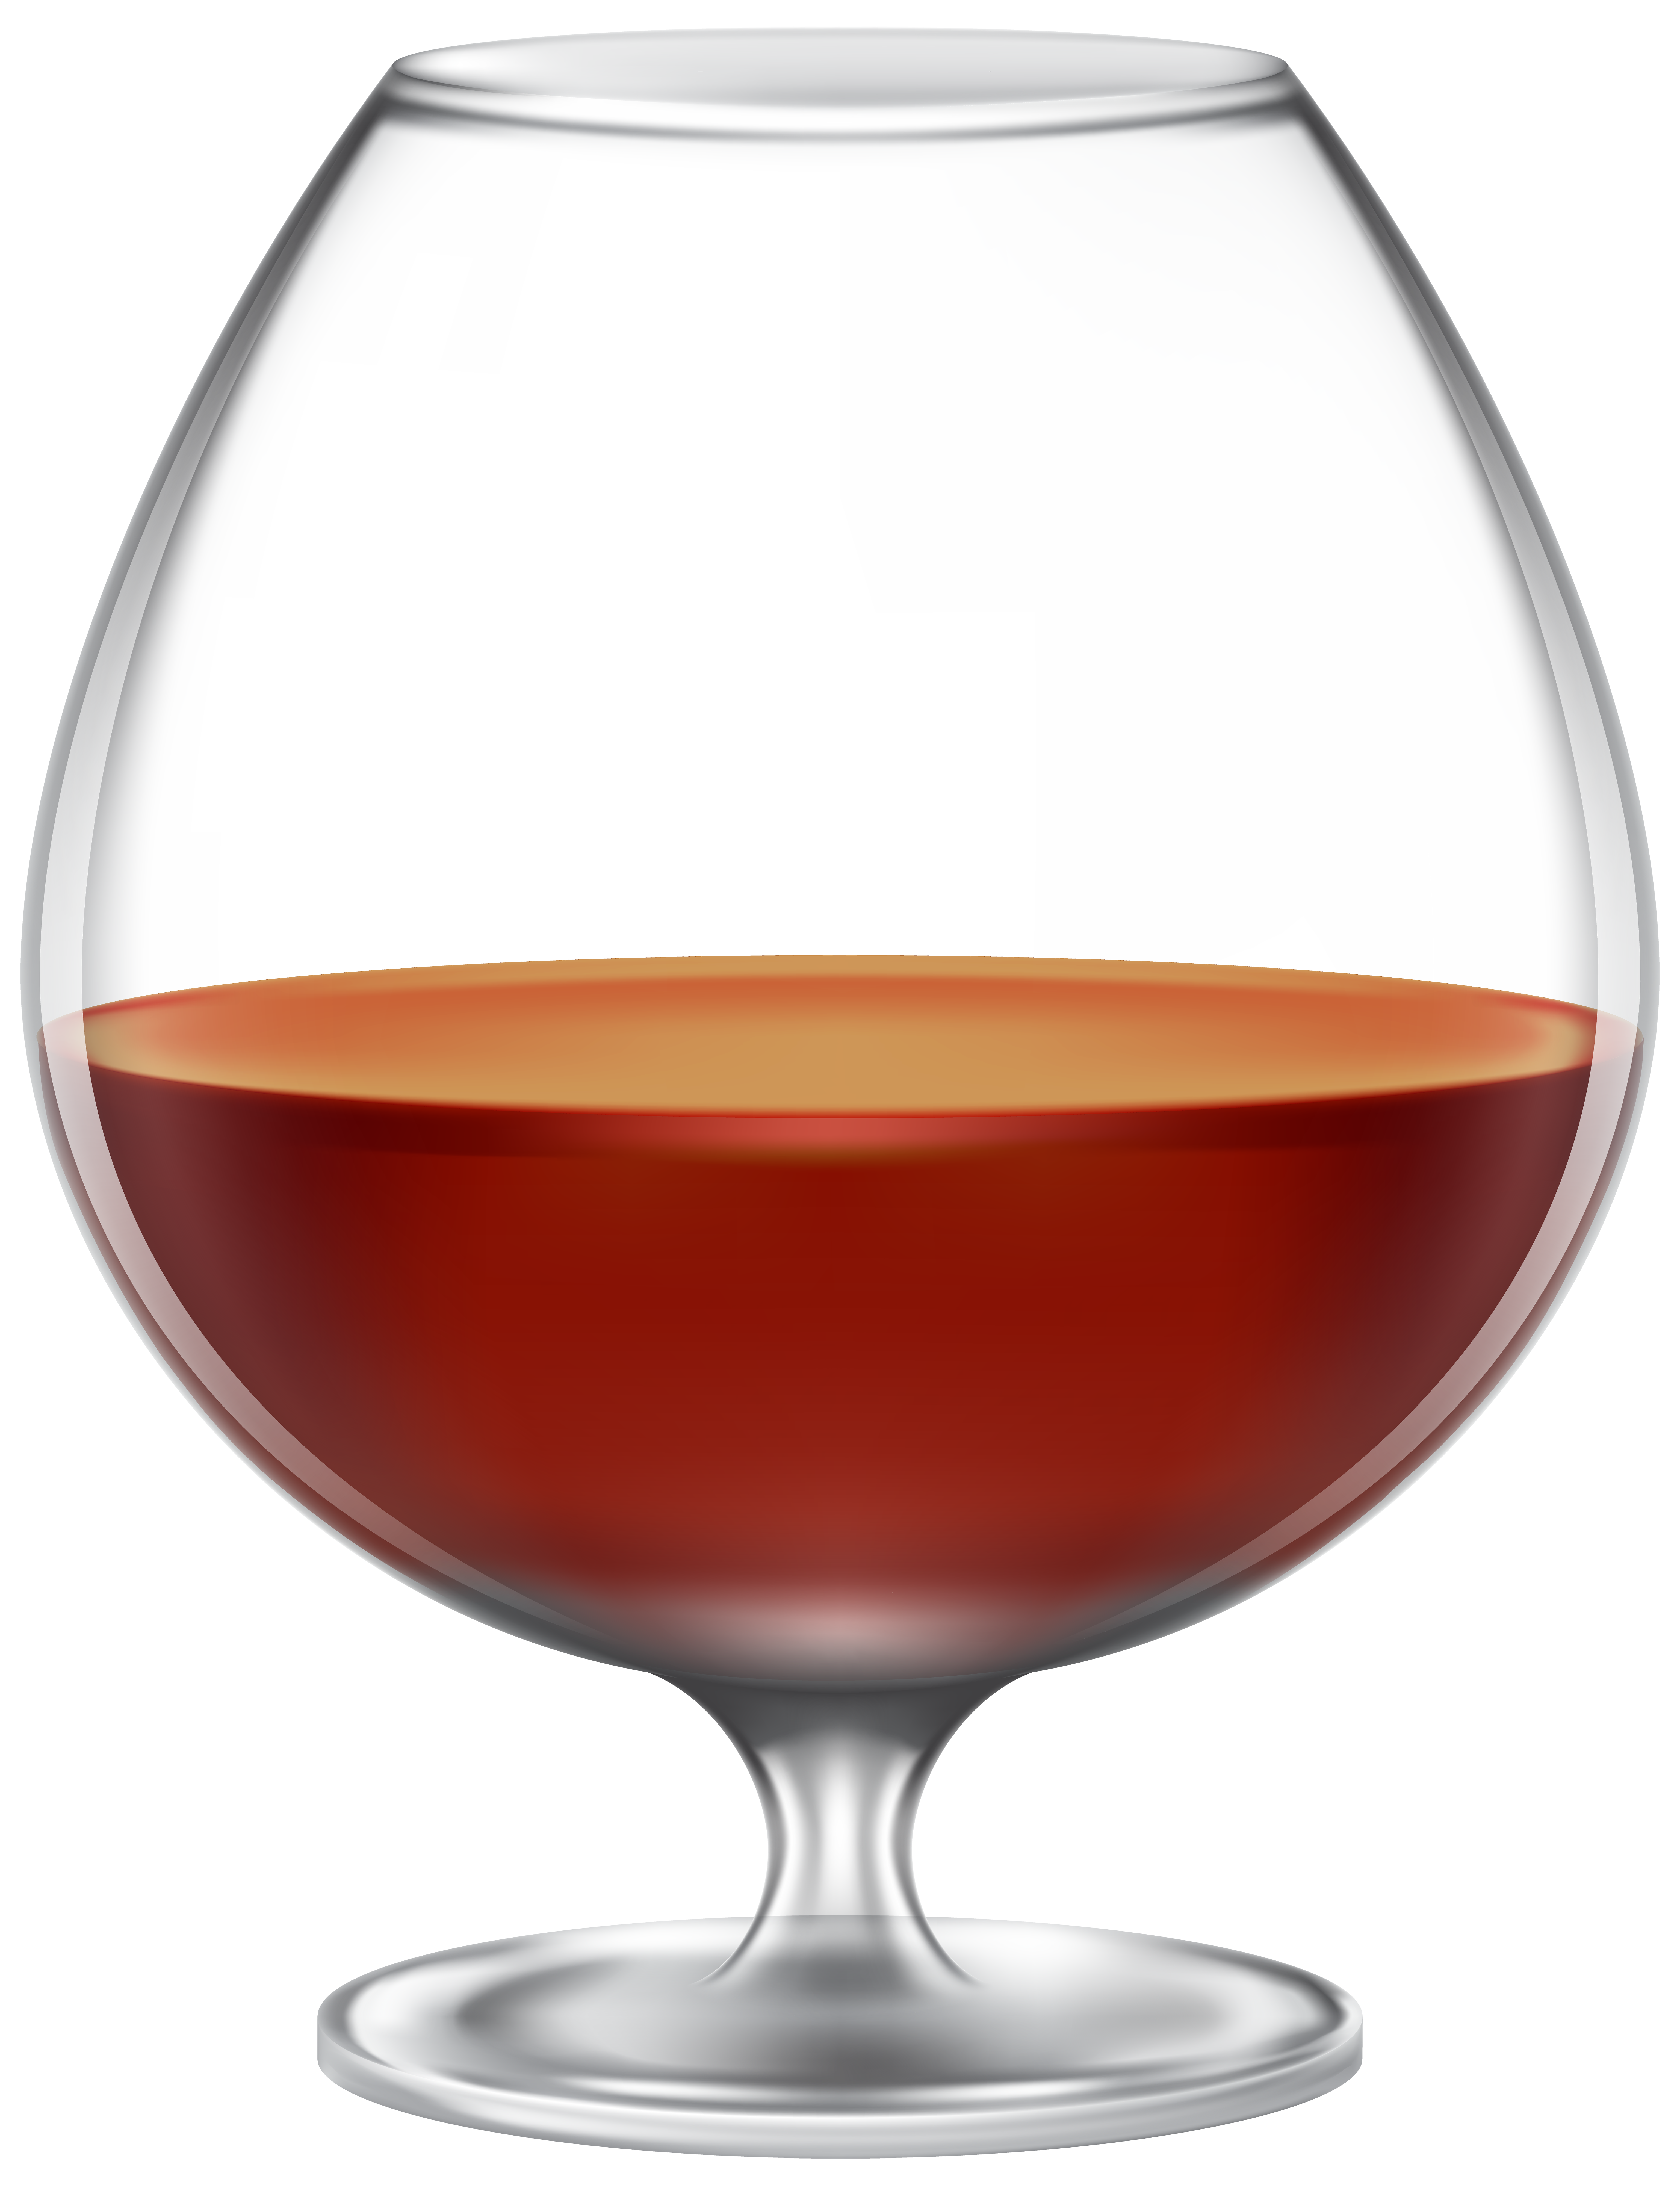 Brandy glass png. Clip art image gallery